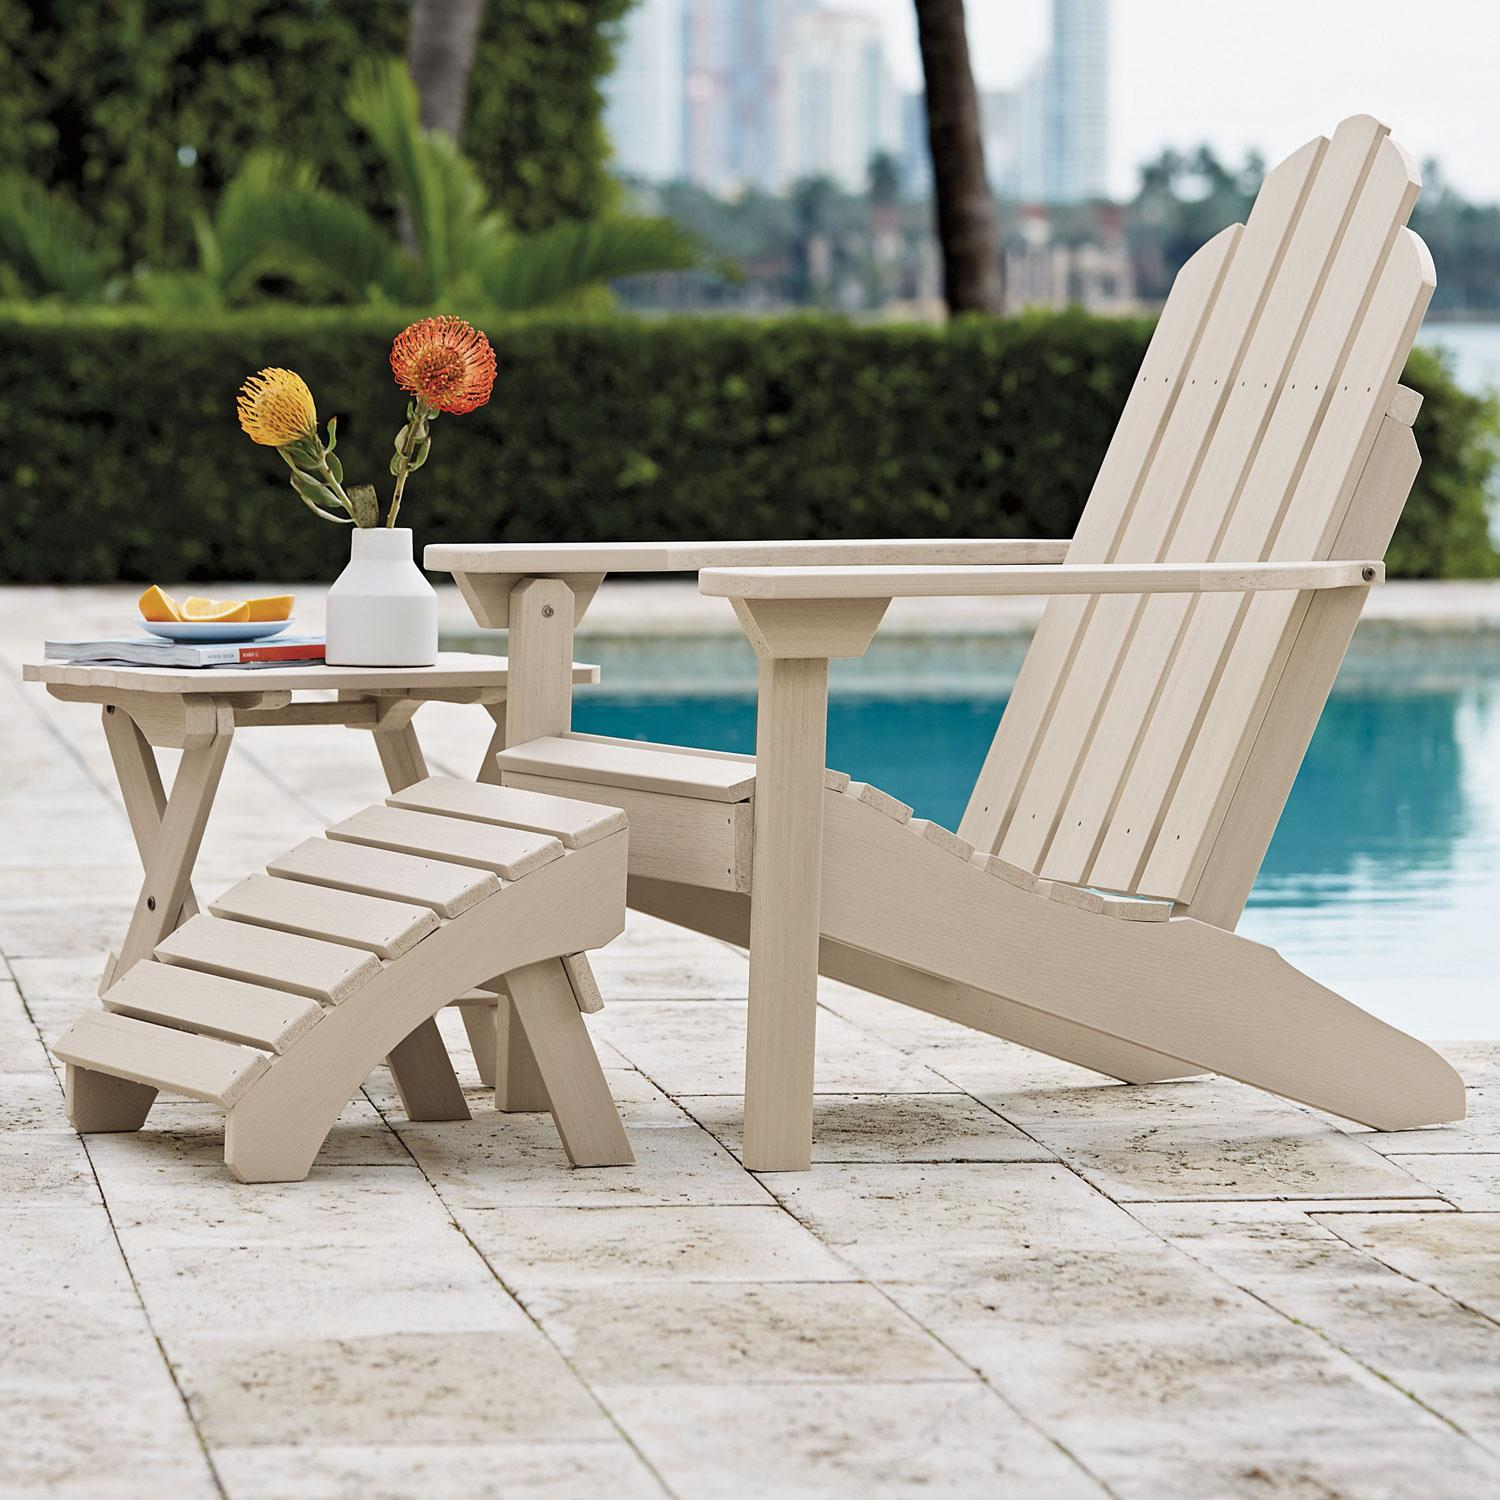 Adirondack Chairs & Outdoor Furniture - Sand Company